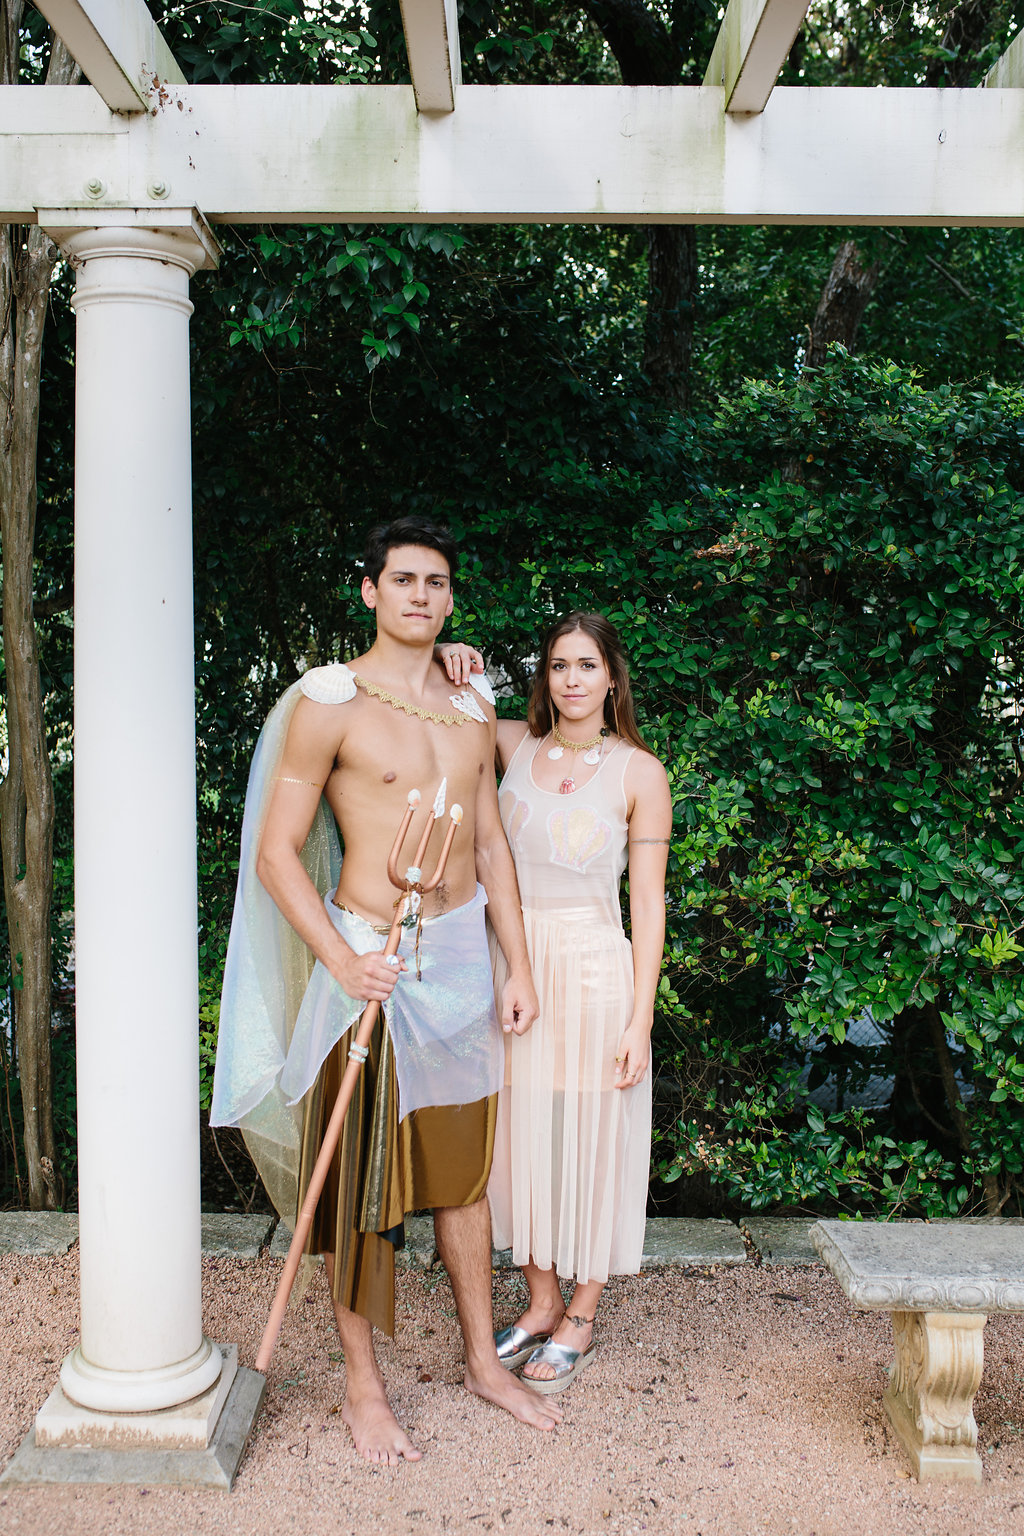 A couple wearing a mermaid and merman costume